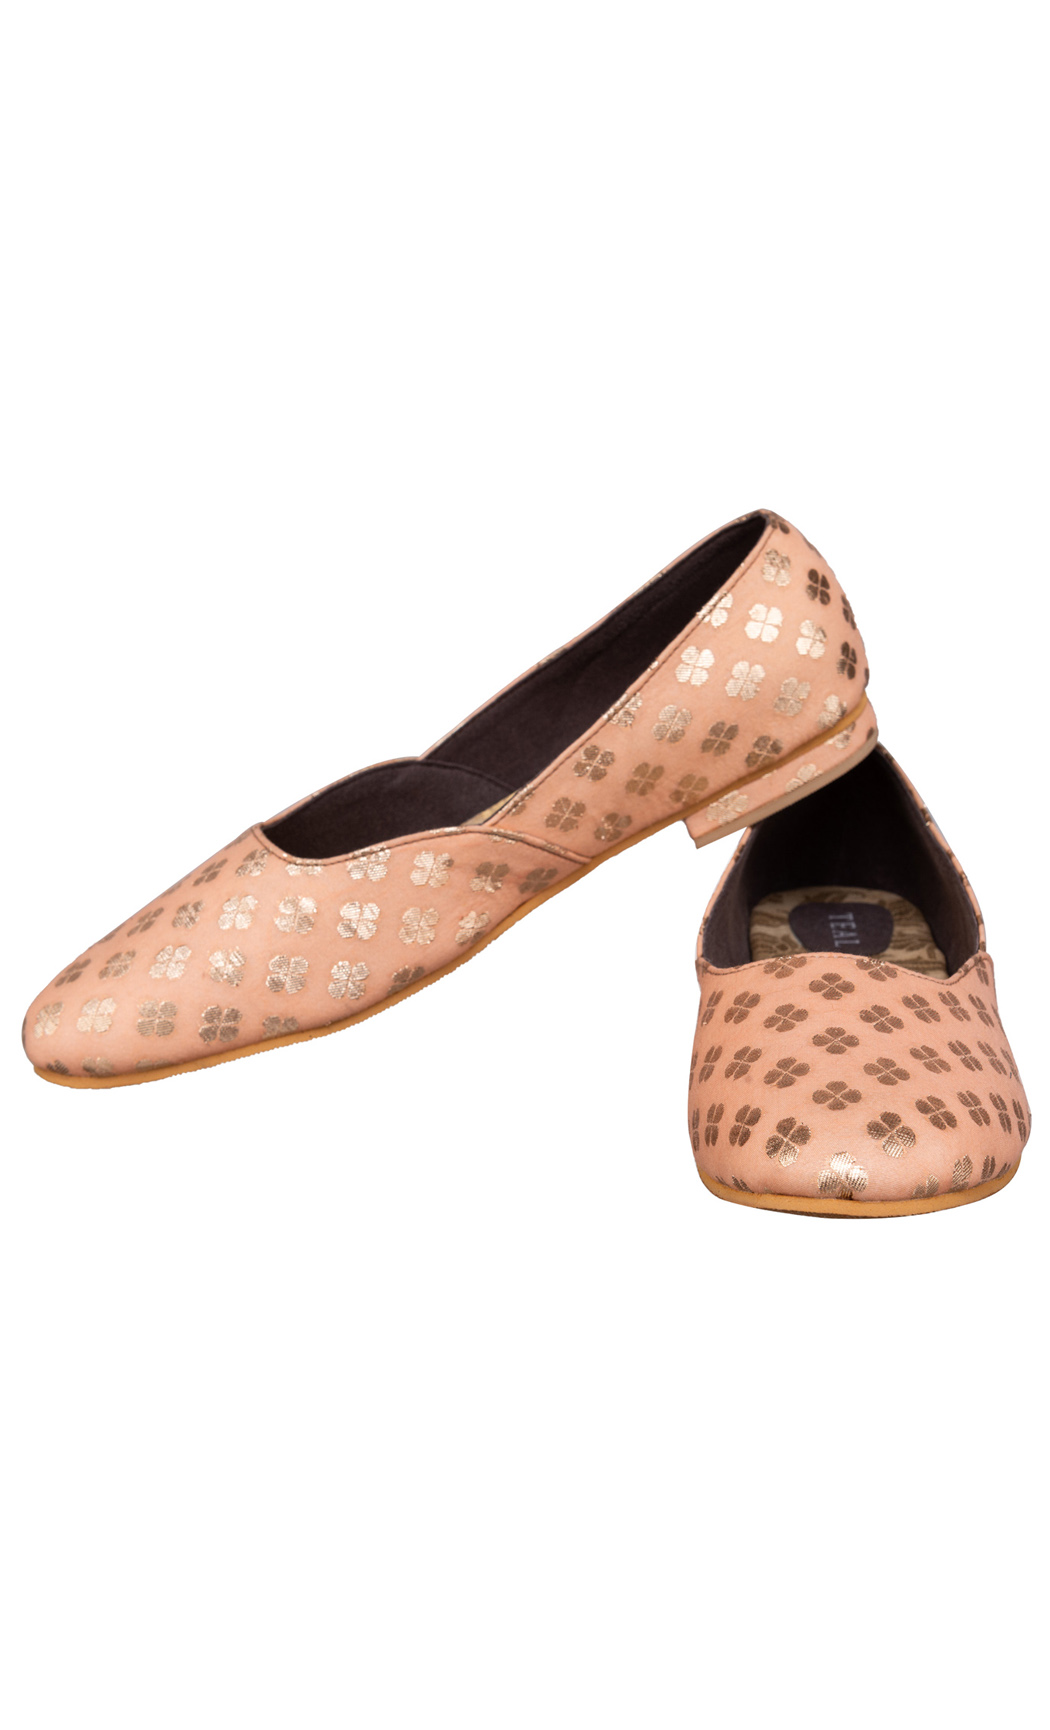 Peach Pretty in Pastel Ballerinas - Buy Online